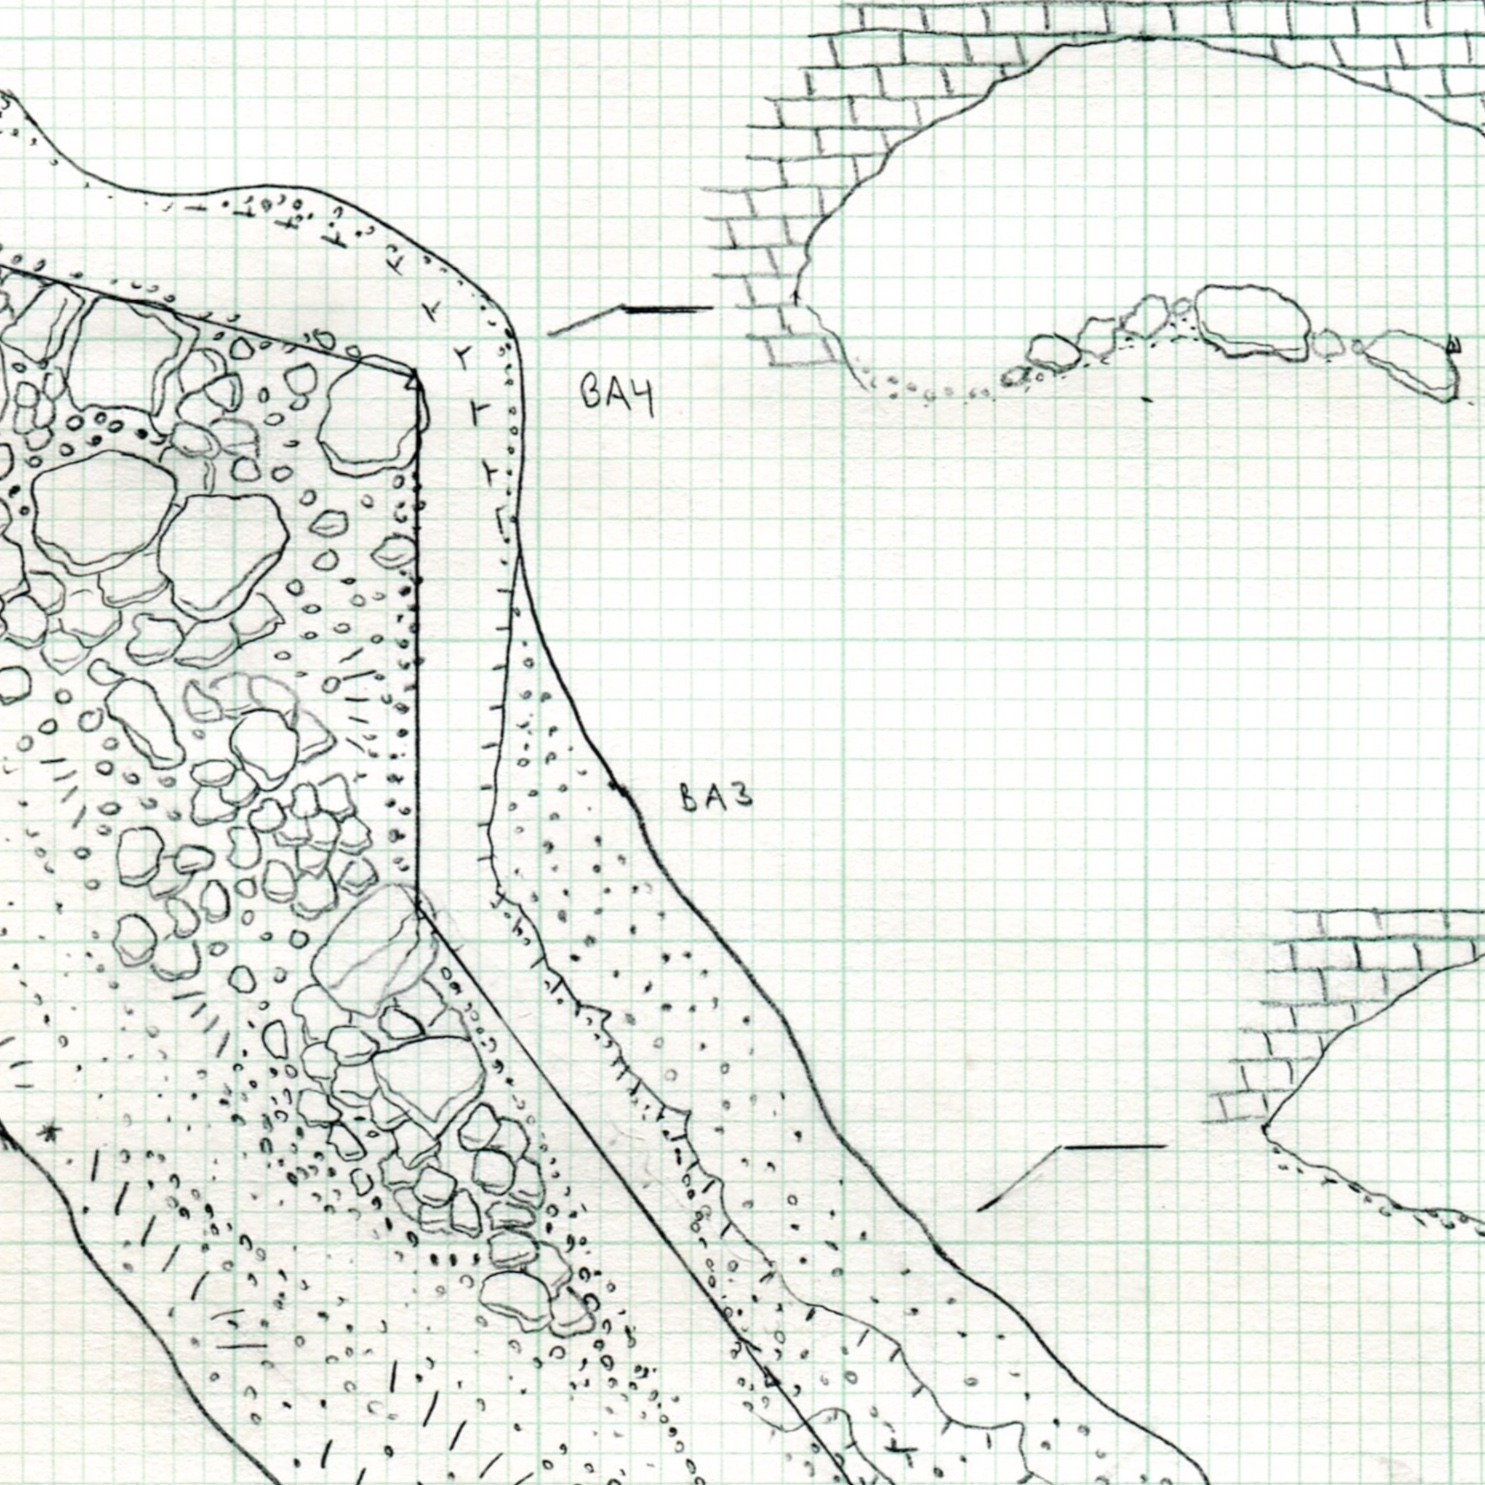 overview of cave survey - What is a cave survey, why is it important, and how is it done.